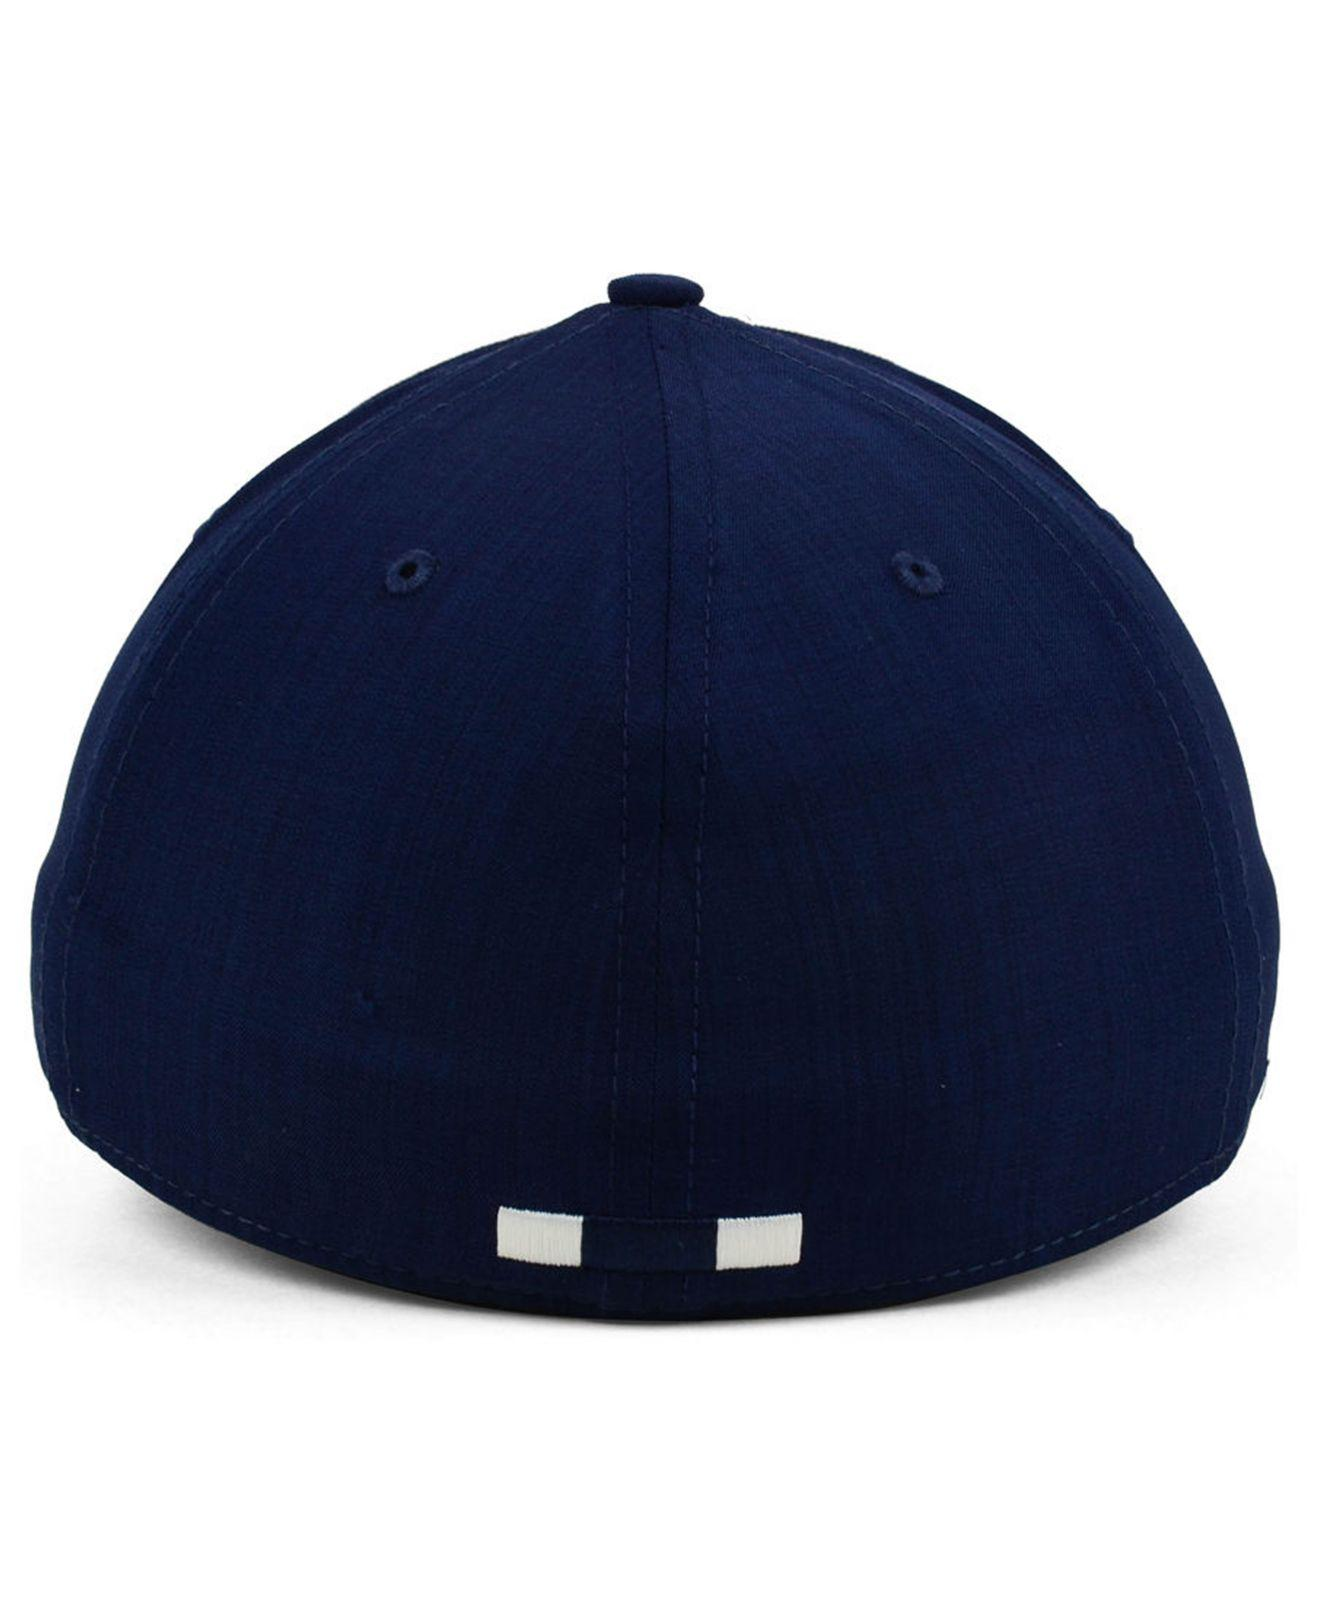 official photos 7a89b f96ee ... shopping nike blue aerobill classic sideline swoosh flex cap for men  lyst. view fullscreen 49cc3